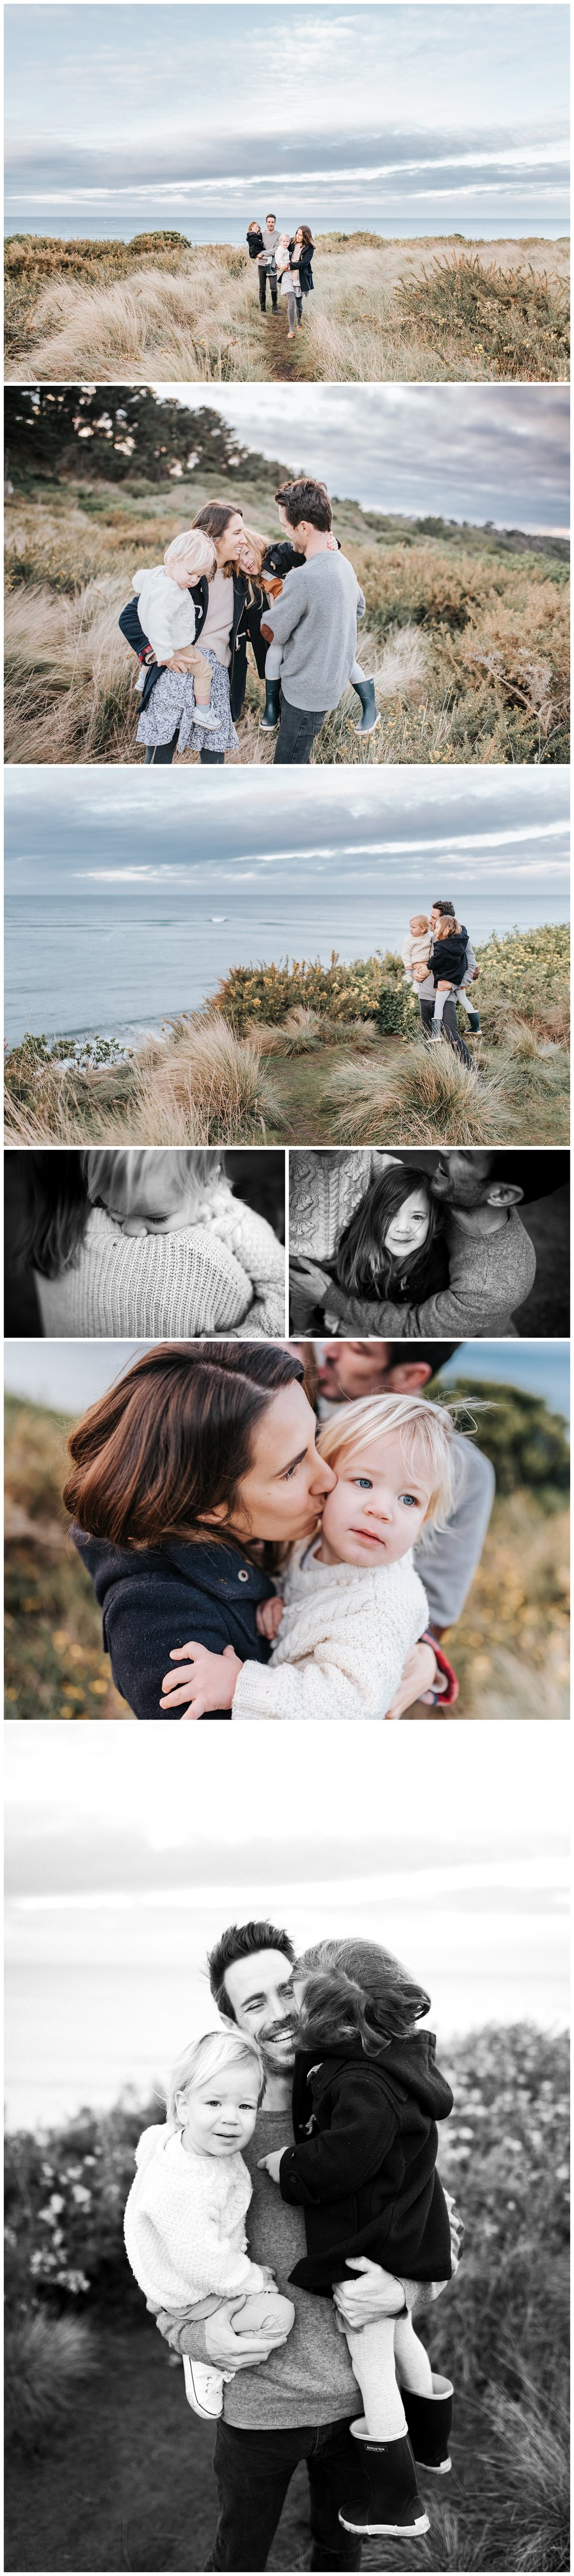 outdoor family photography melbourne